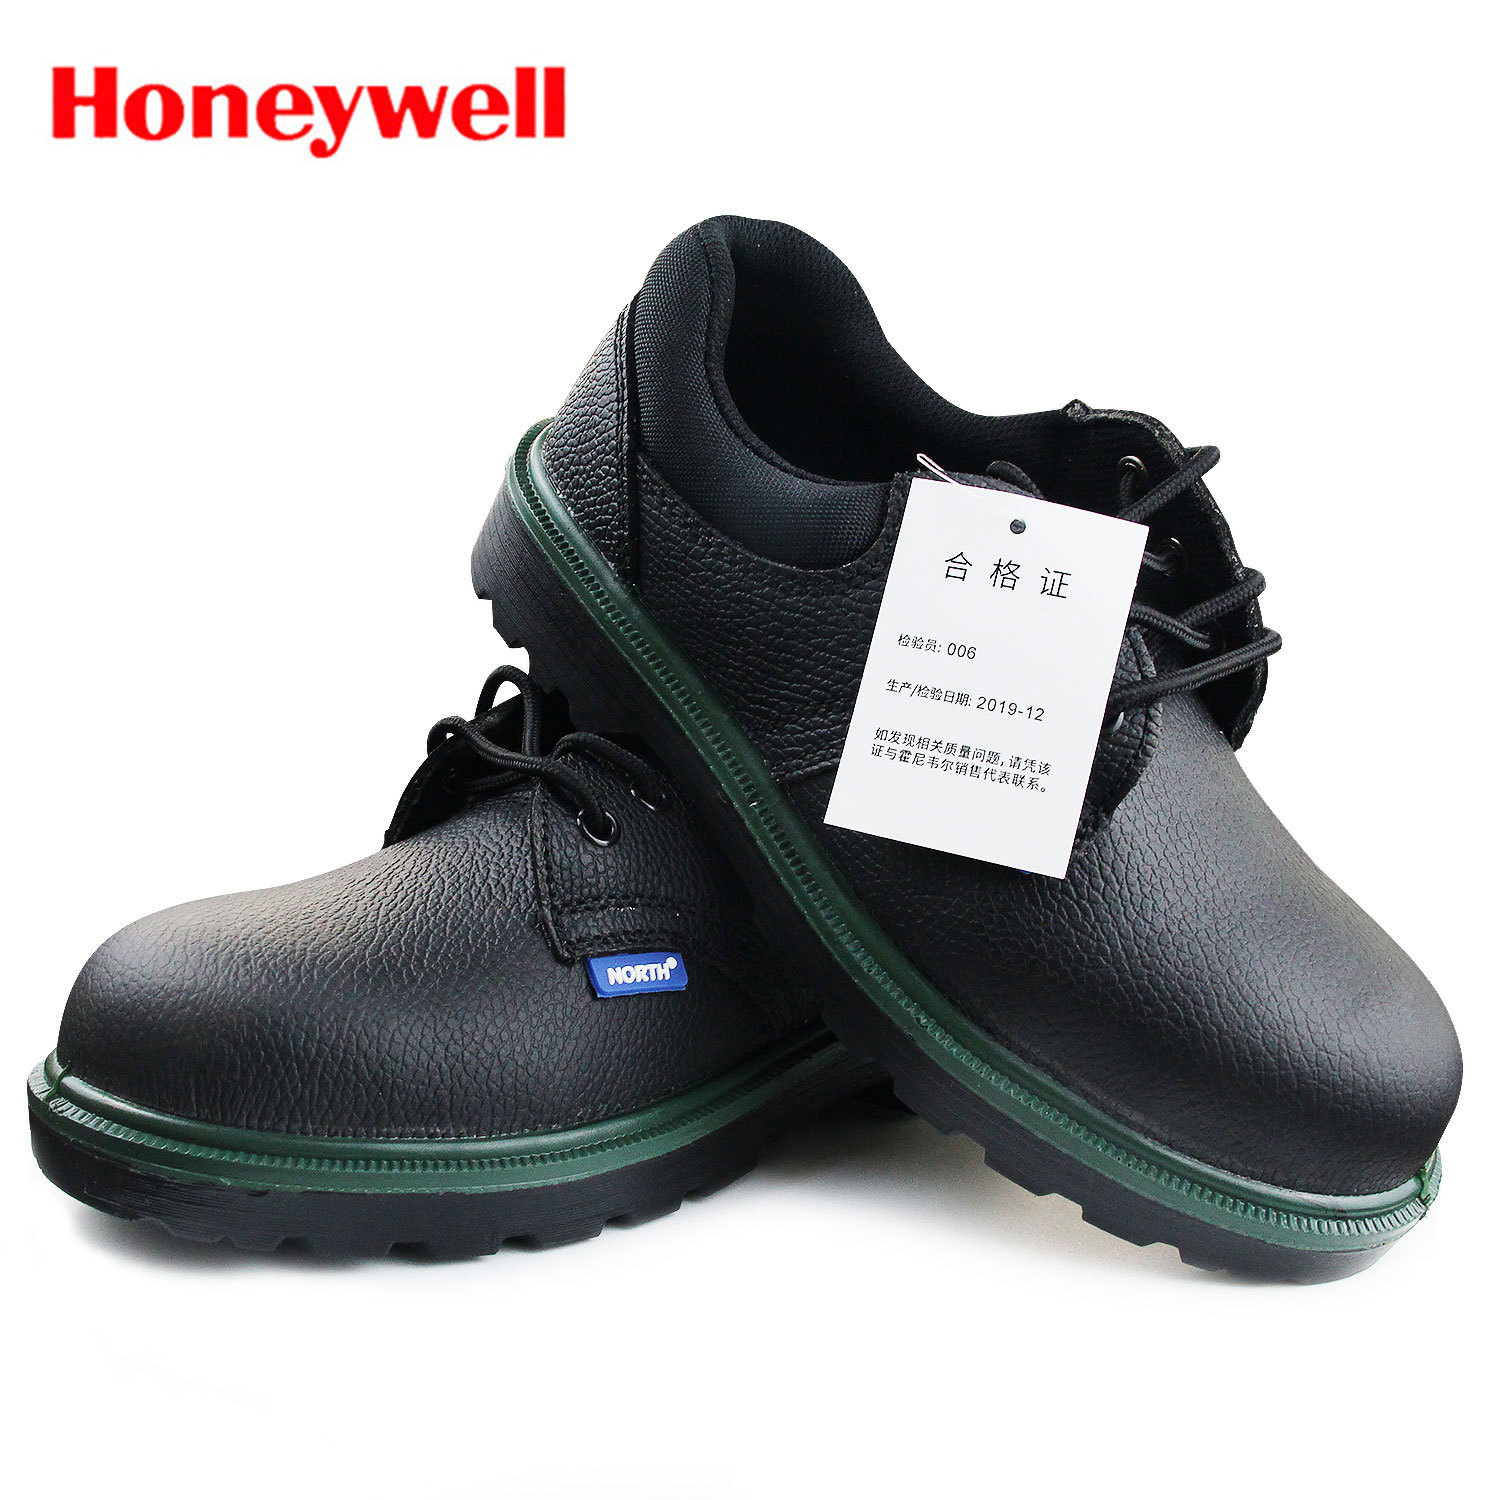 Honeywell TUCANO S1P leather safety shoes, safety shoes, anti-smashing, anti-static, anti-puncture m